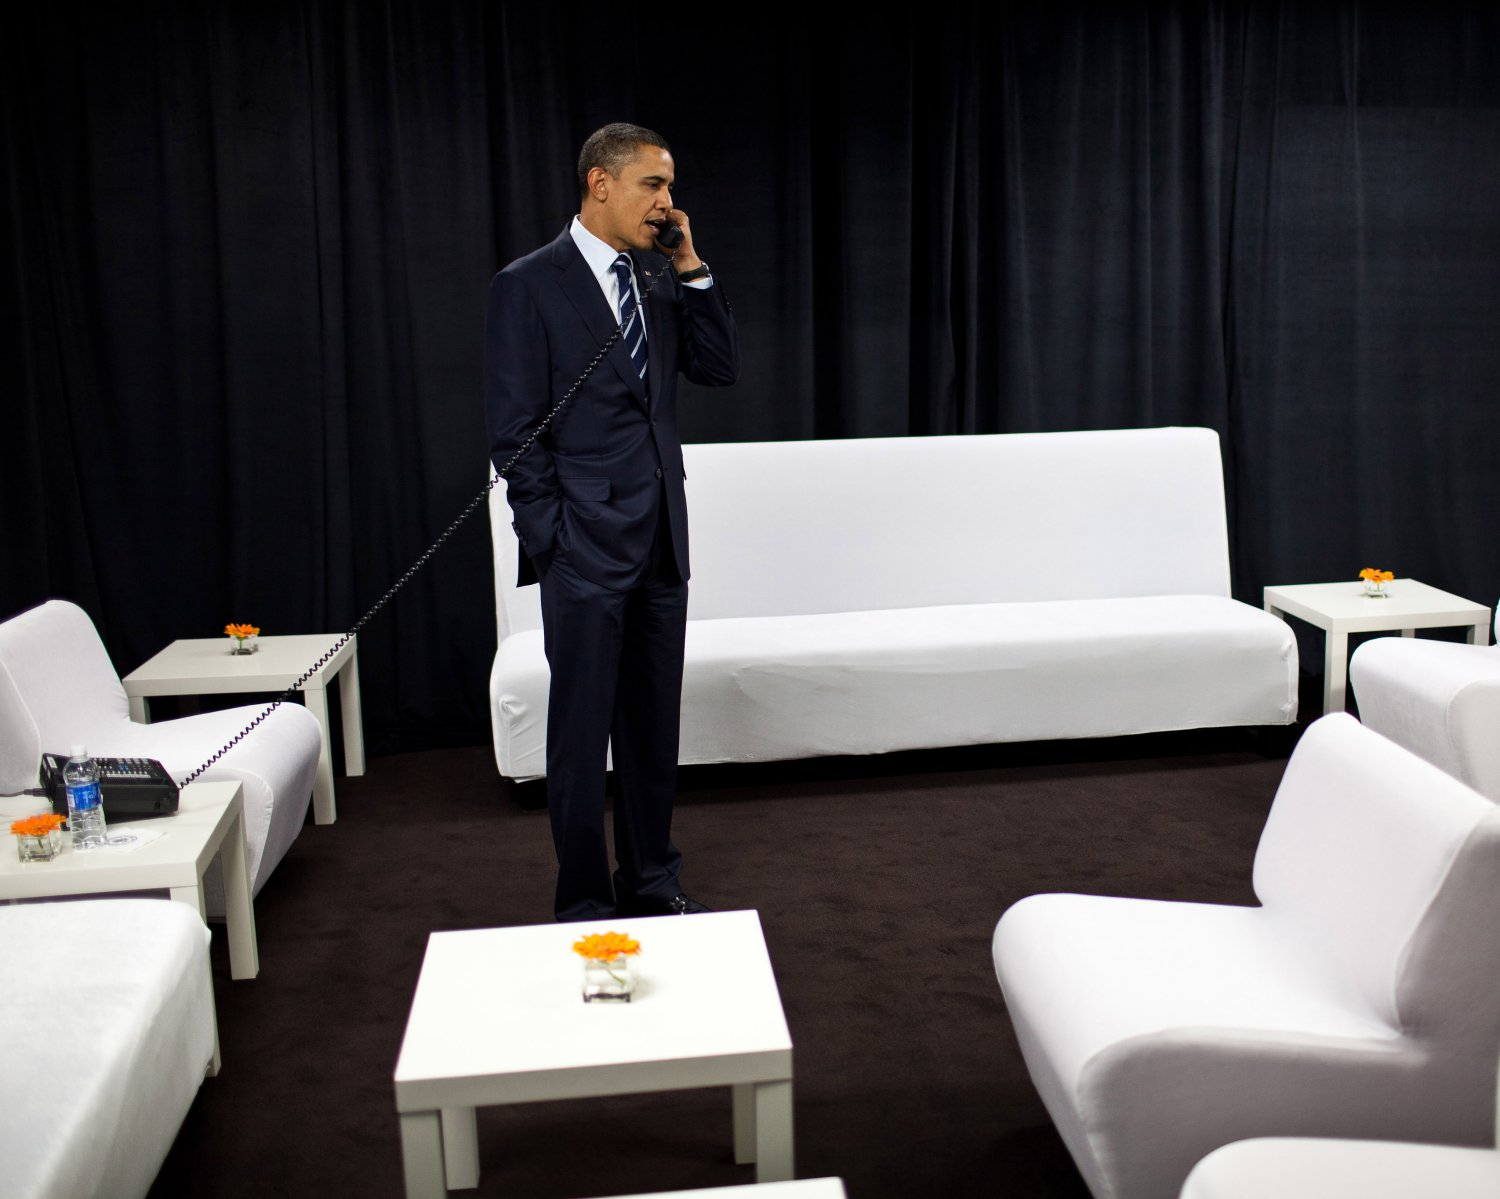 PRESIDENT BARACK OBAMA BACKSTAGE @ INTEL CORPORATION IN 2015 8X10 PHOTO (ZY-527)